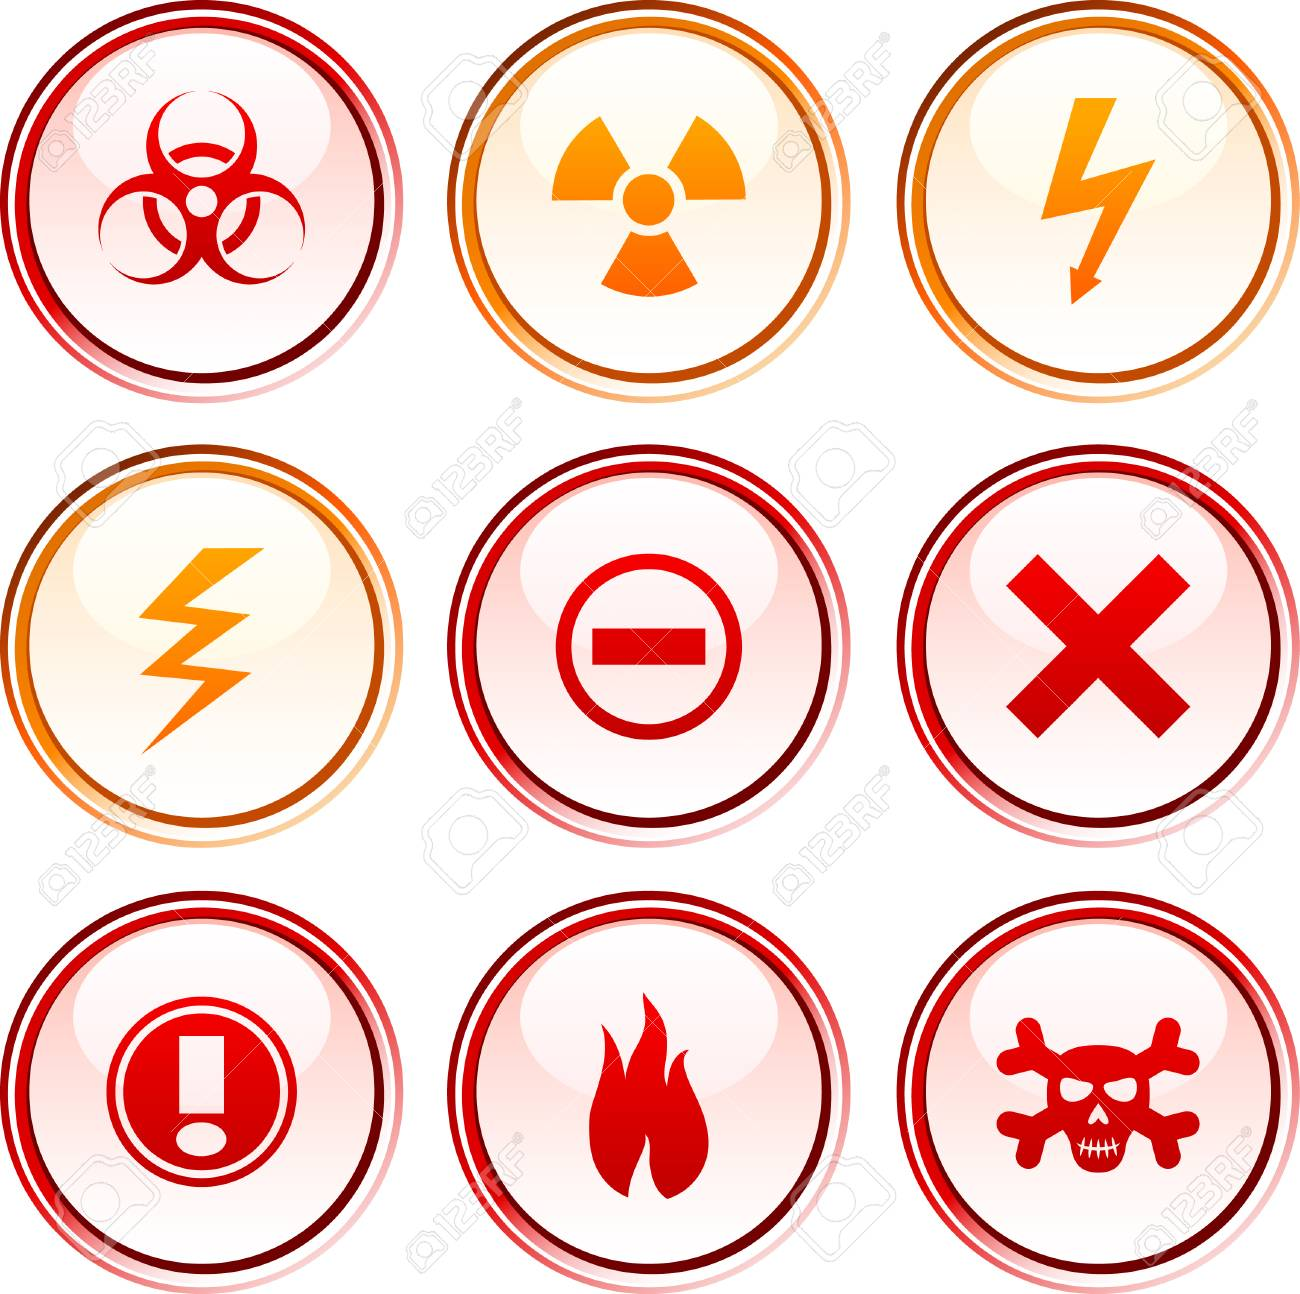 Warning  button set. Vector illustration. Stock Vector - 6122174